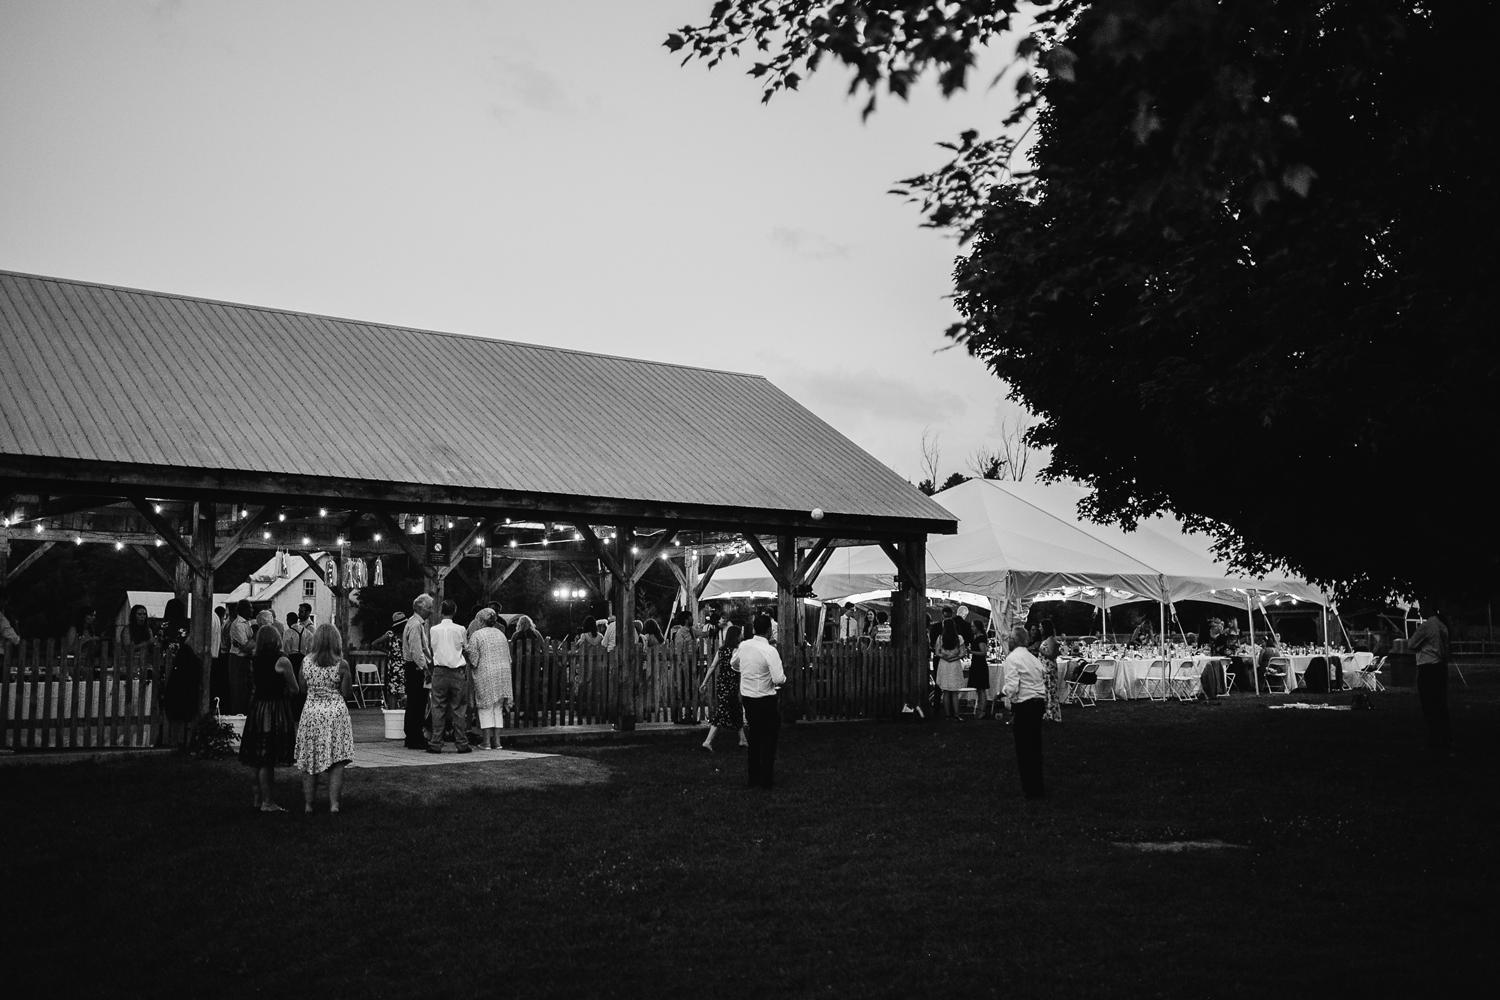 cumberland heritage museum wedding - kerry ford photography-247.jpg